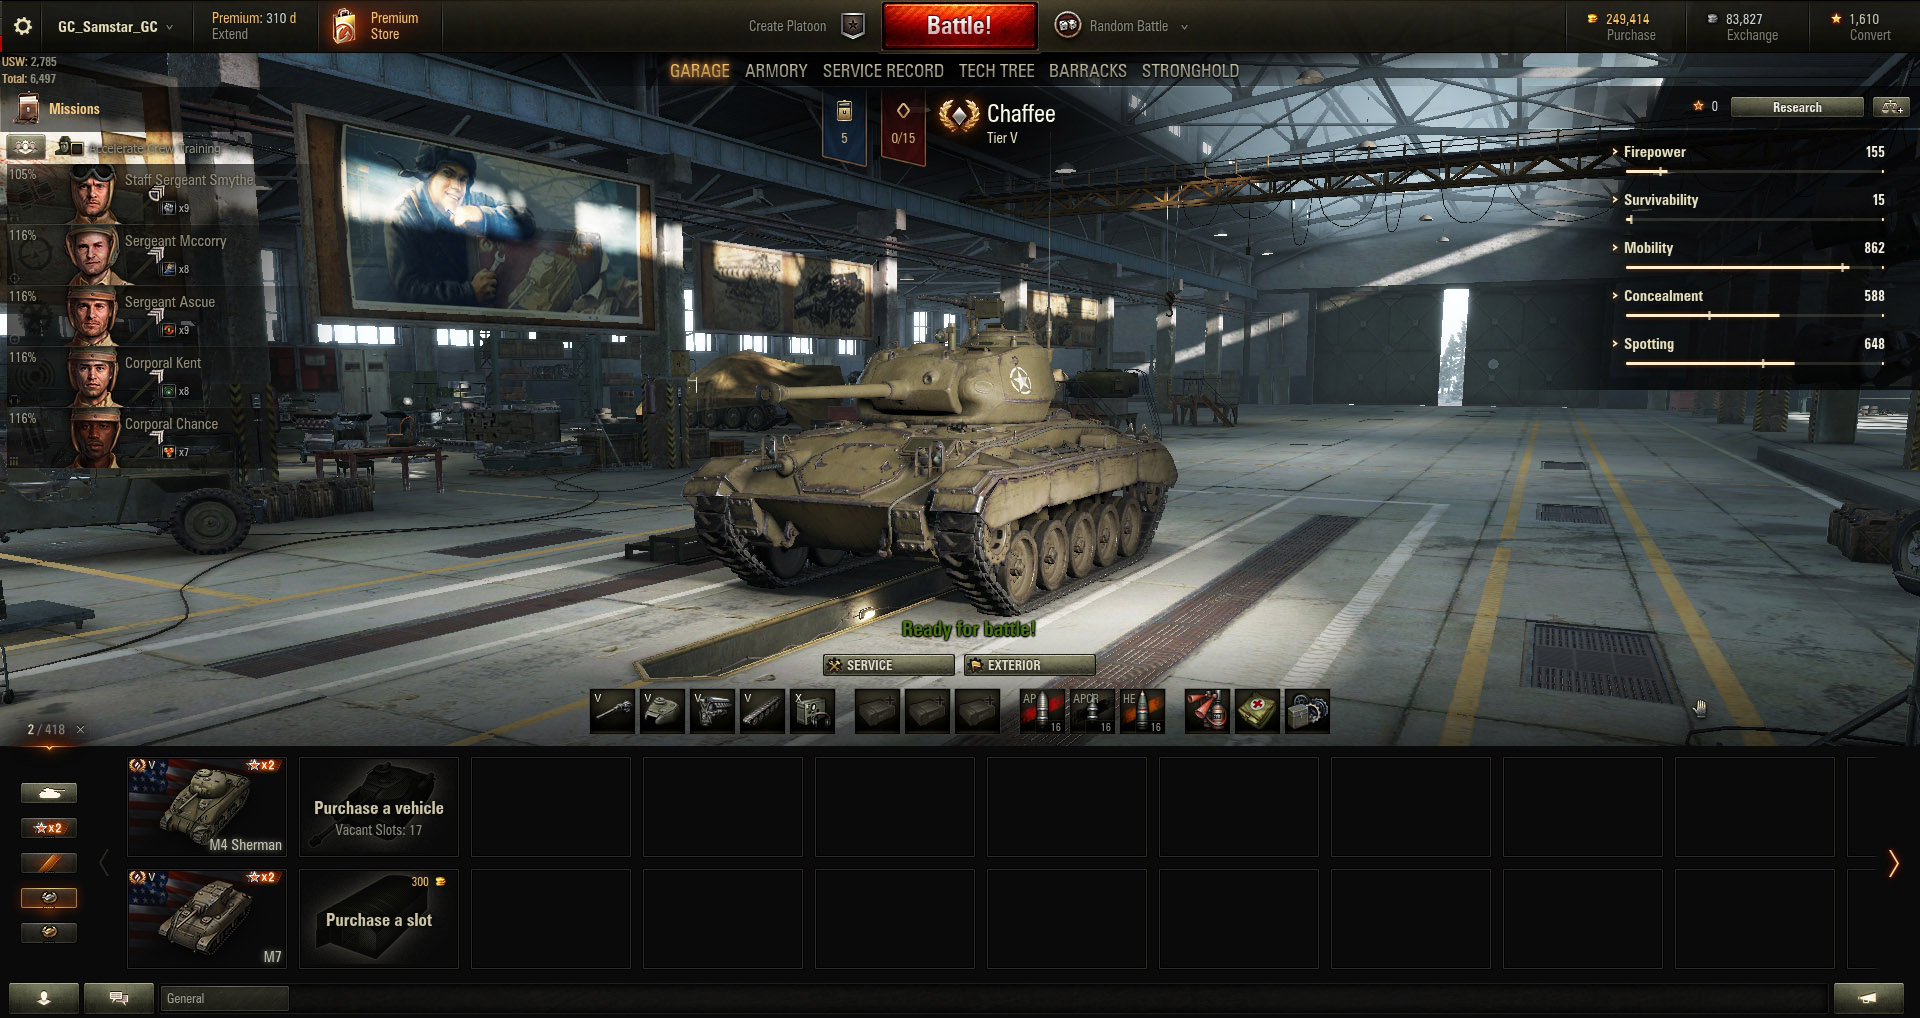 Chaffee - Tier 5 Light